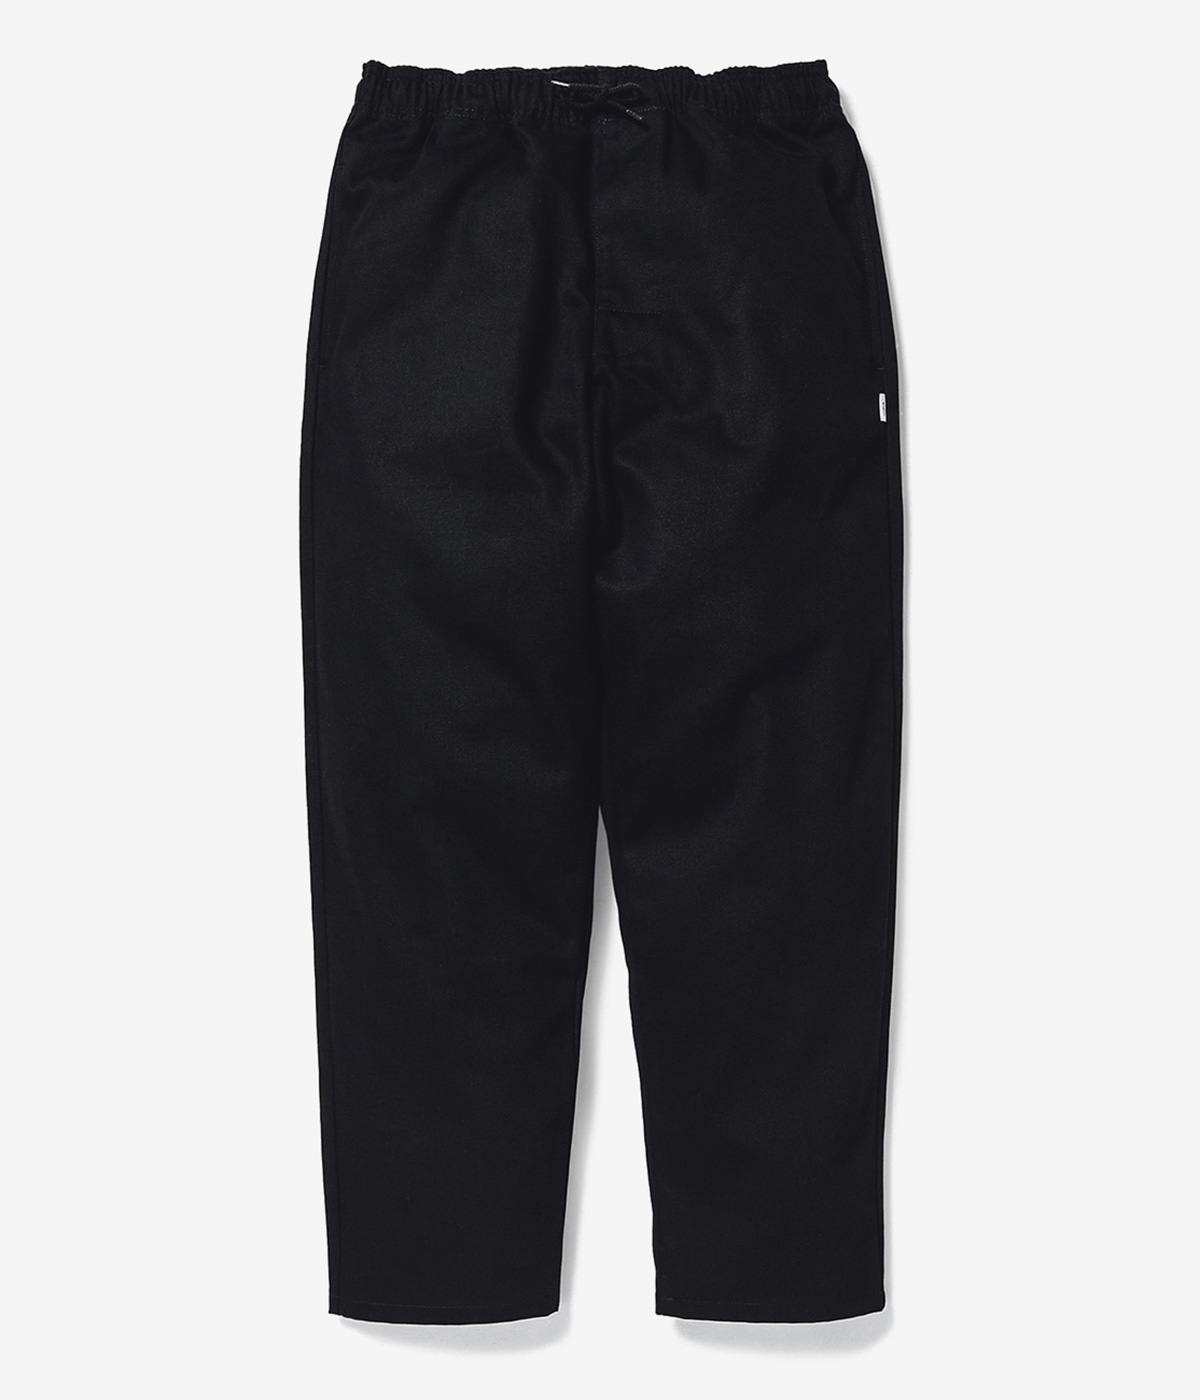 CHEF 01 / TROUSERS. COTTON. TWILL